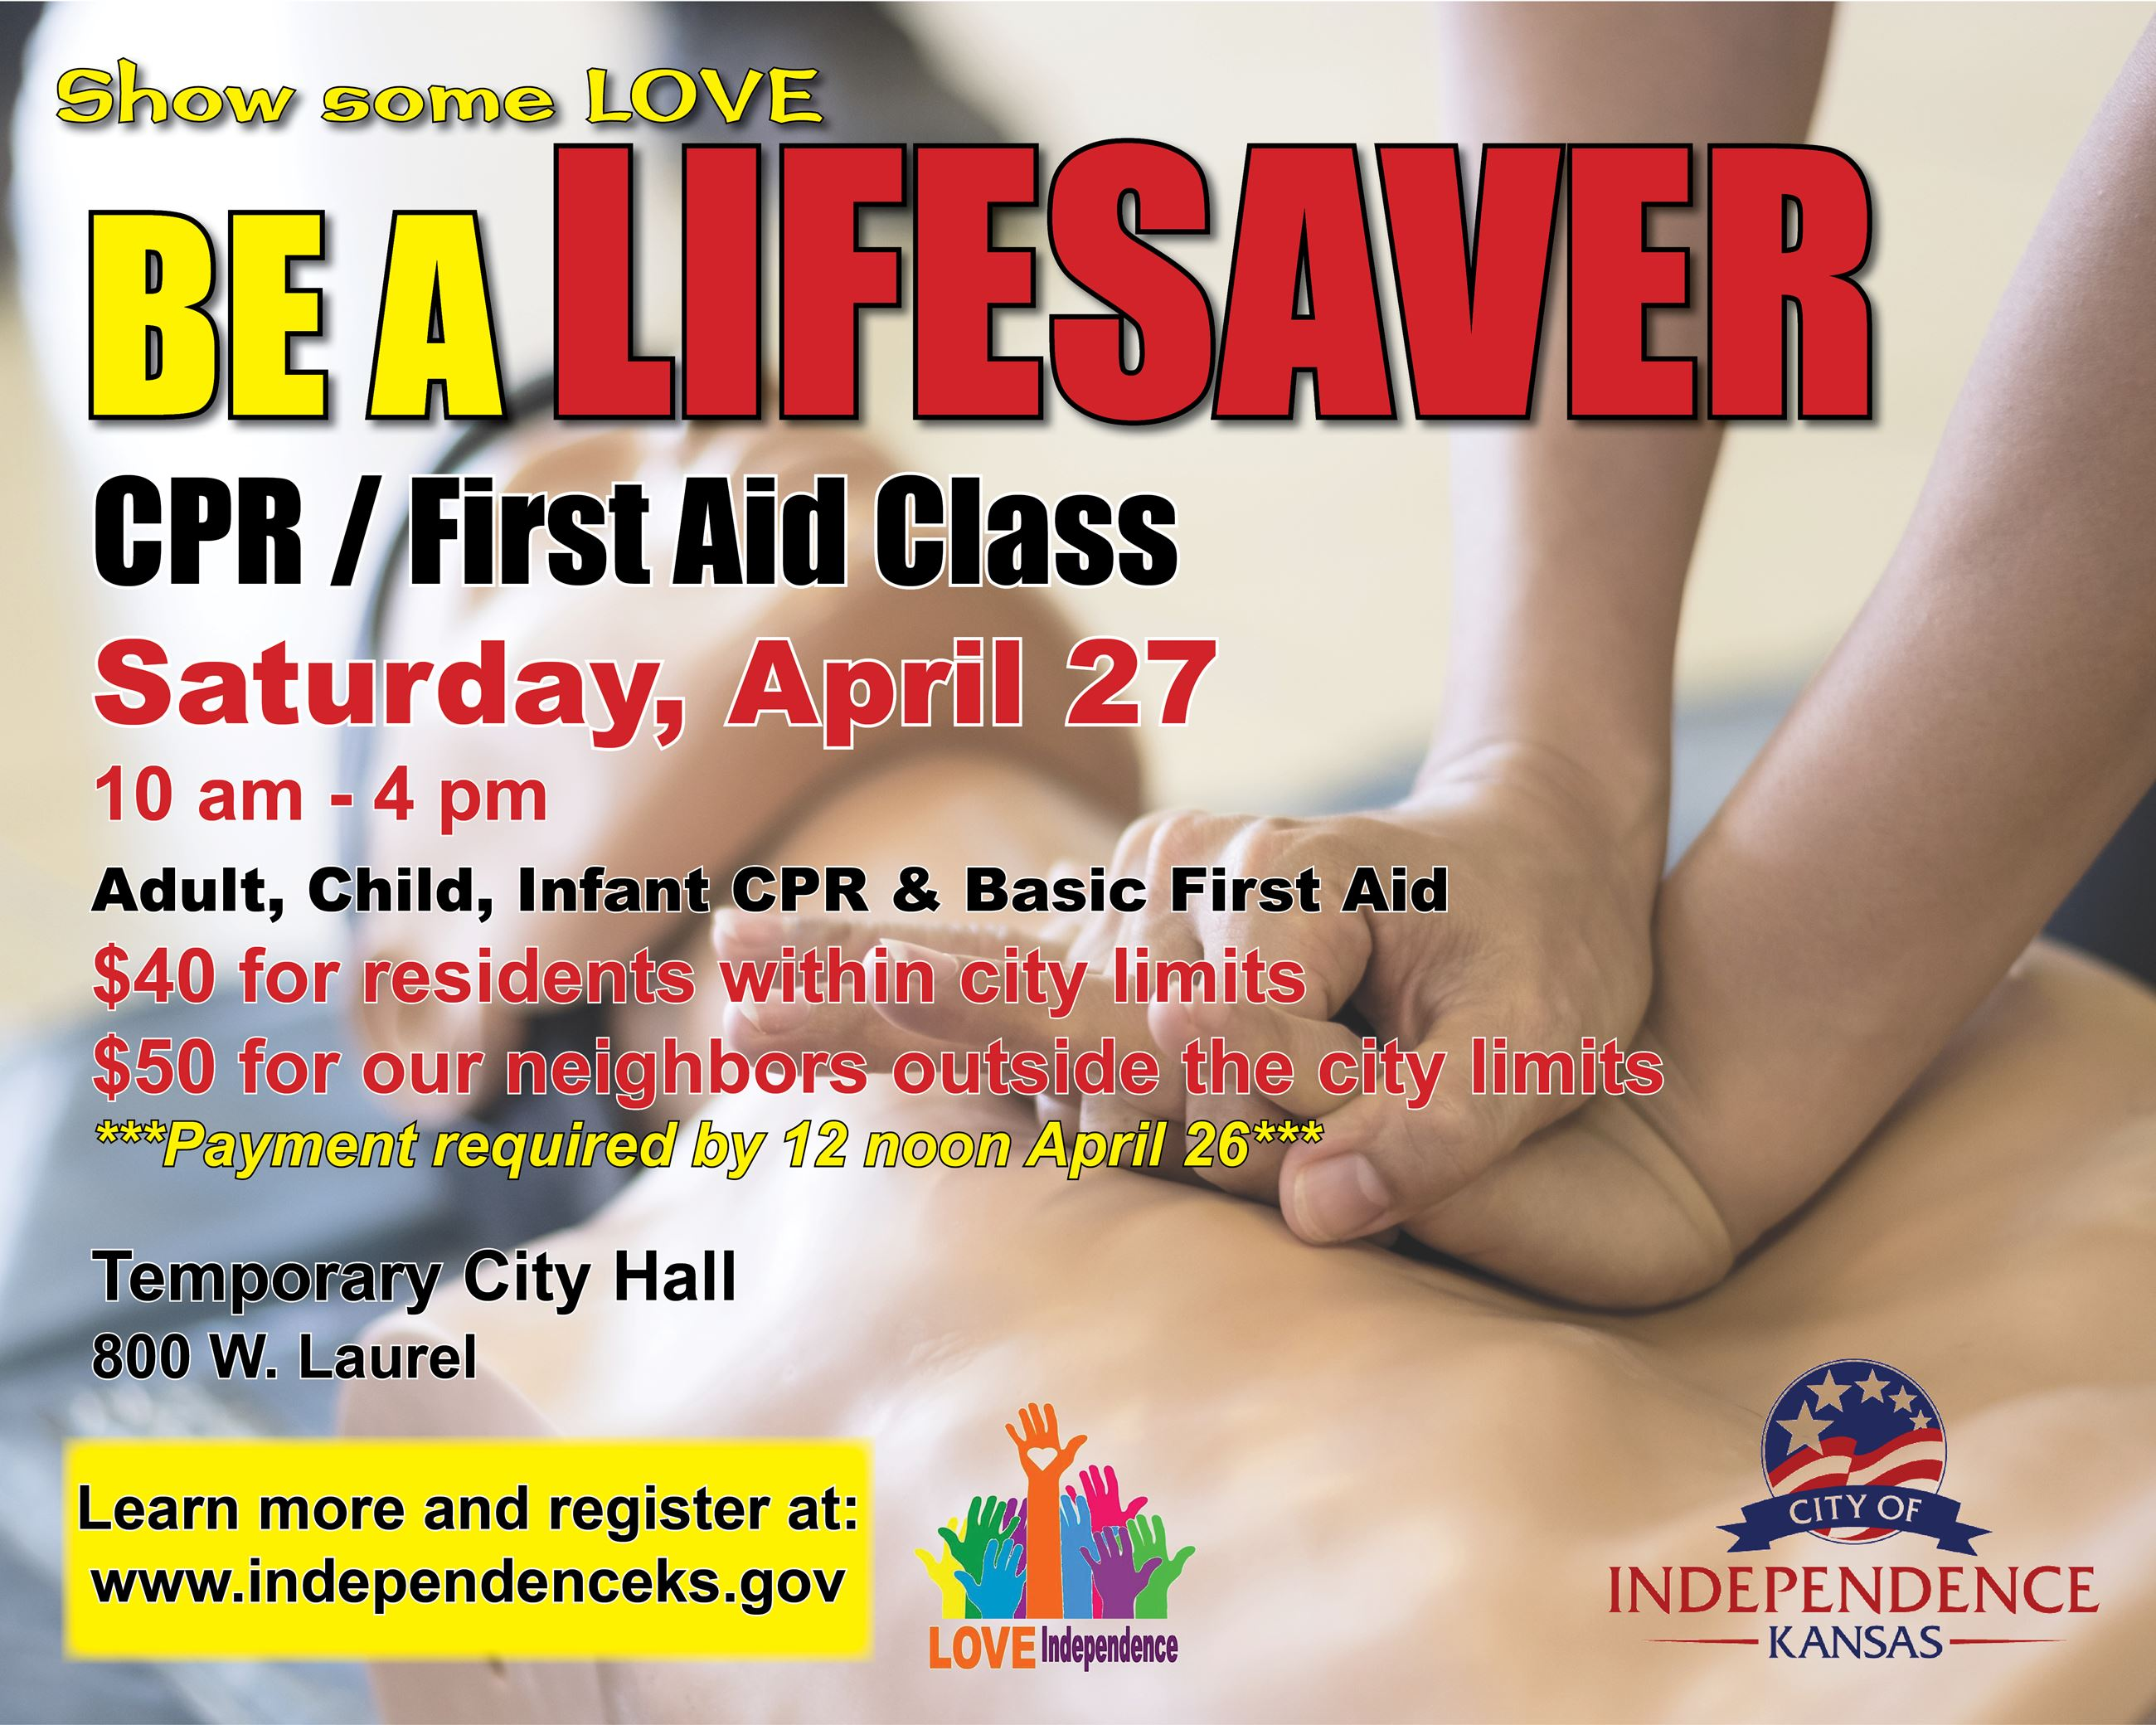 City of Indy CPR Class TV Channel Slide 04.27.2019